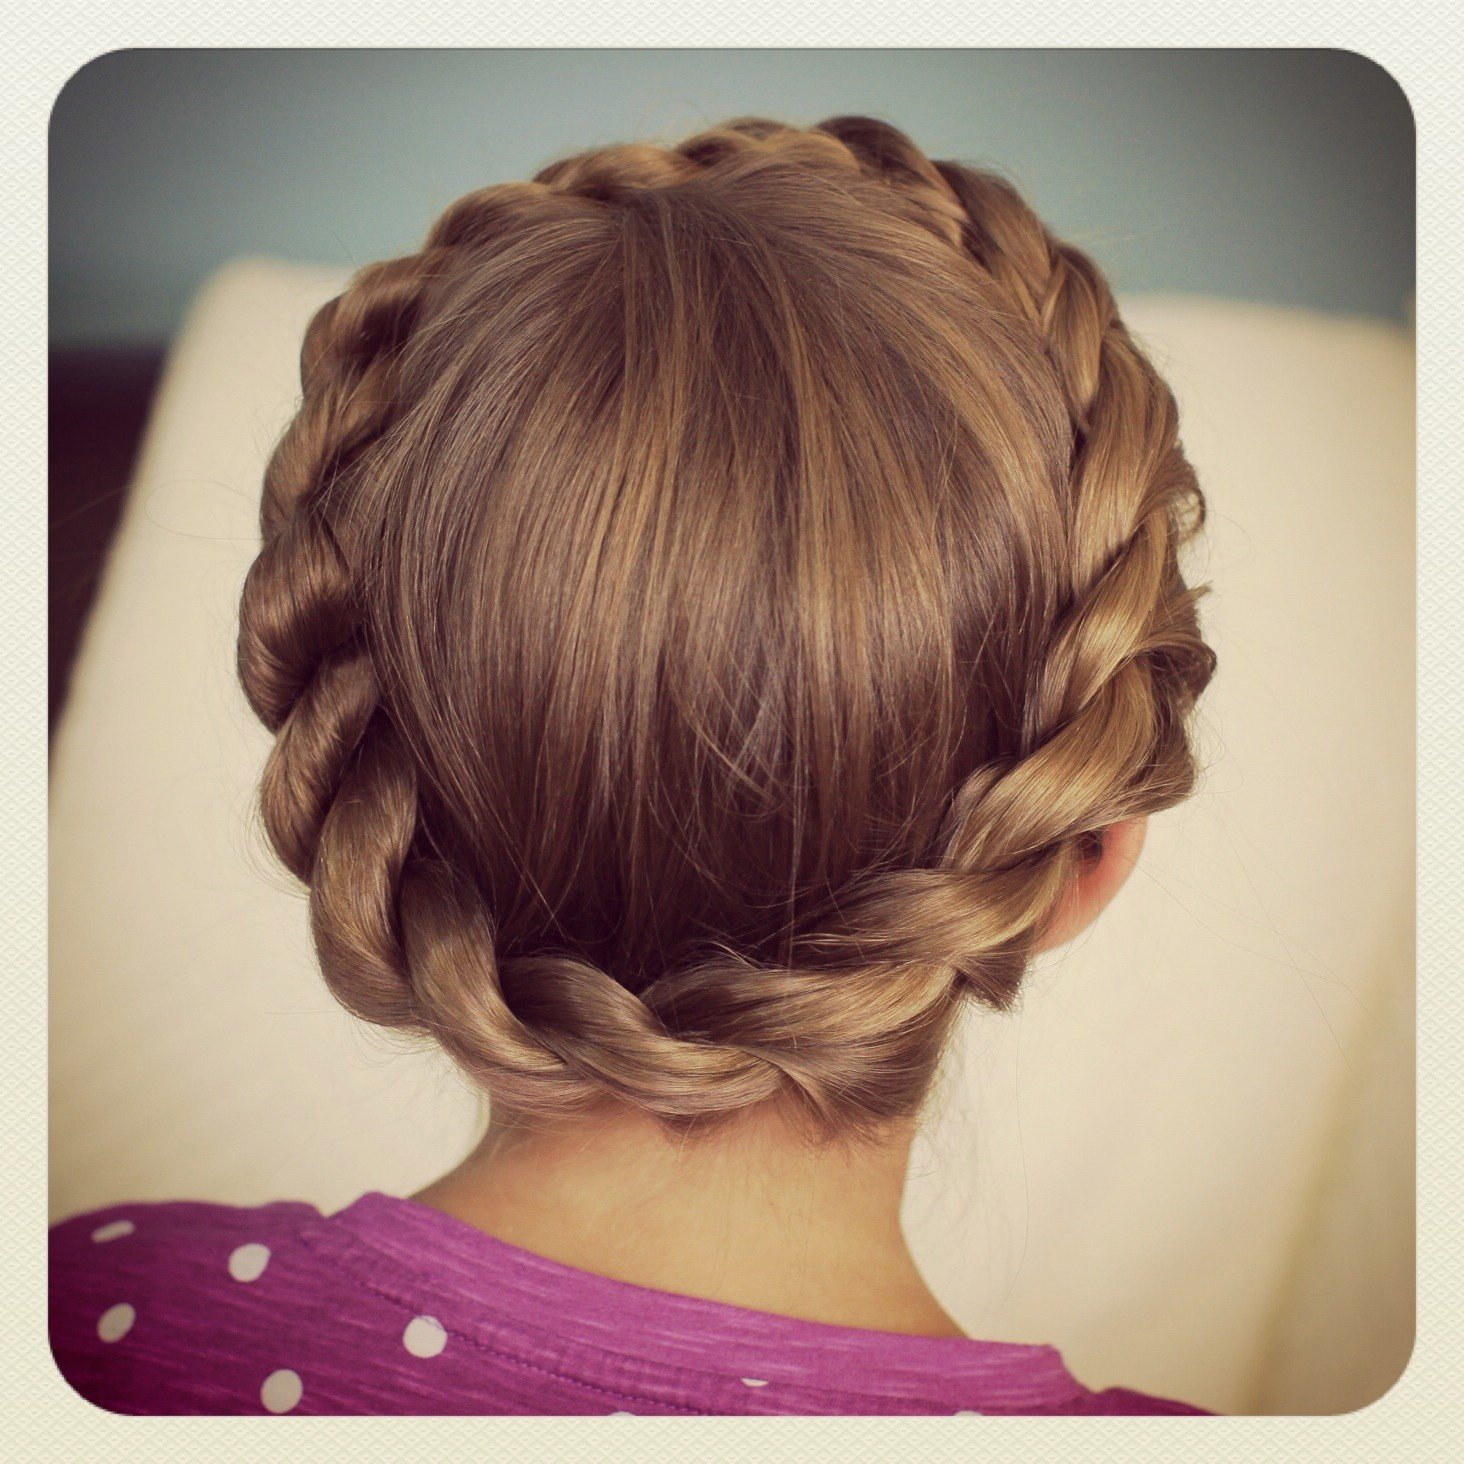 New Crown Rope Twist Braid Updo Hairstyles Cute Girls Ideas With Pictures